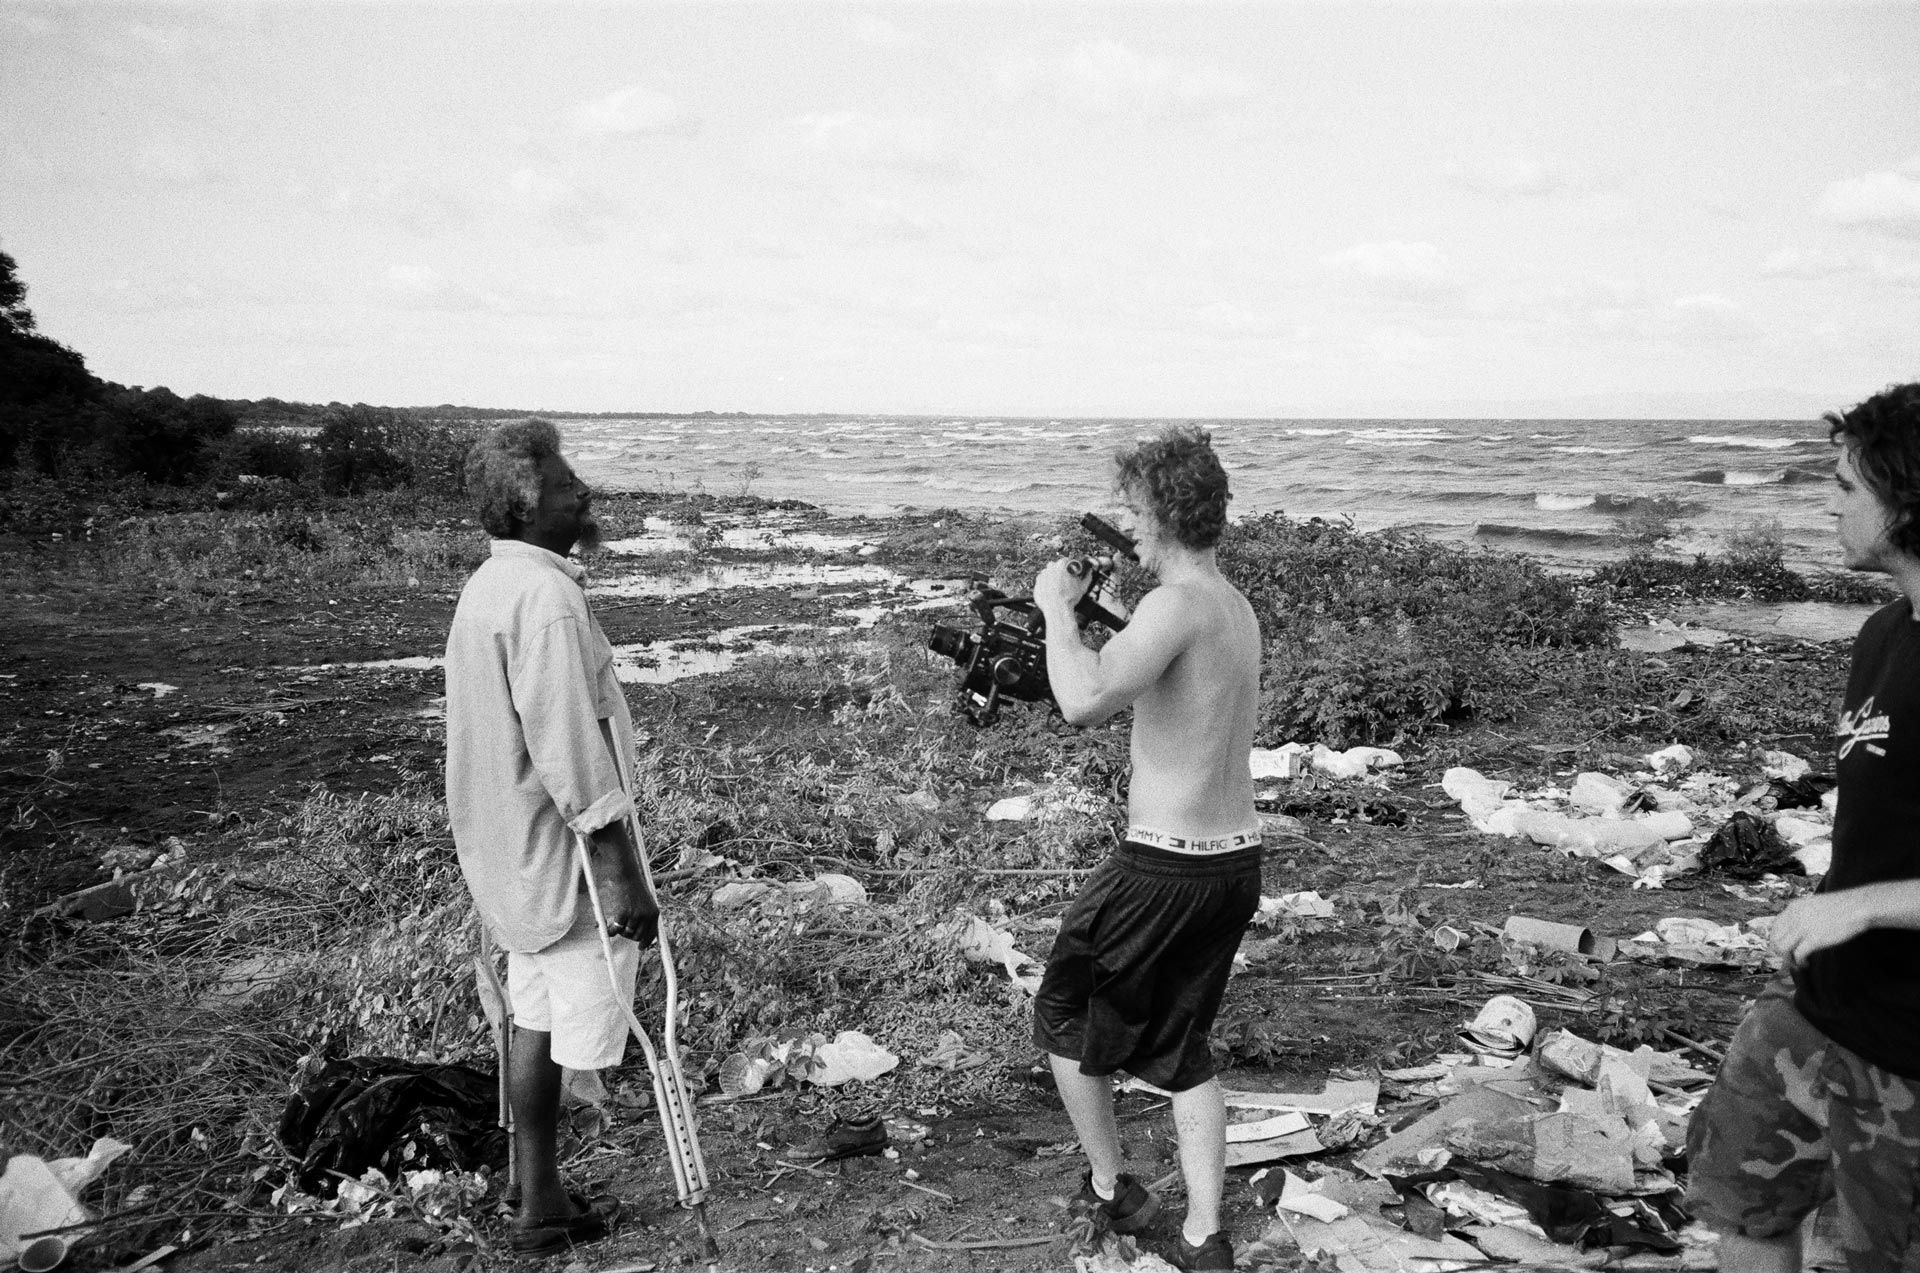 Marco Gilbert and Vincent Ruel-Cote from Les Gamins filming disabled man on beachside for Karim Ouellet music video of La Mer A Boire